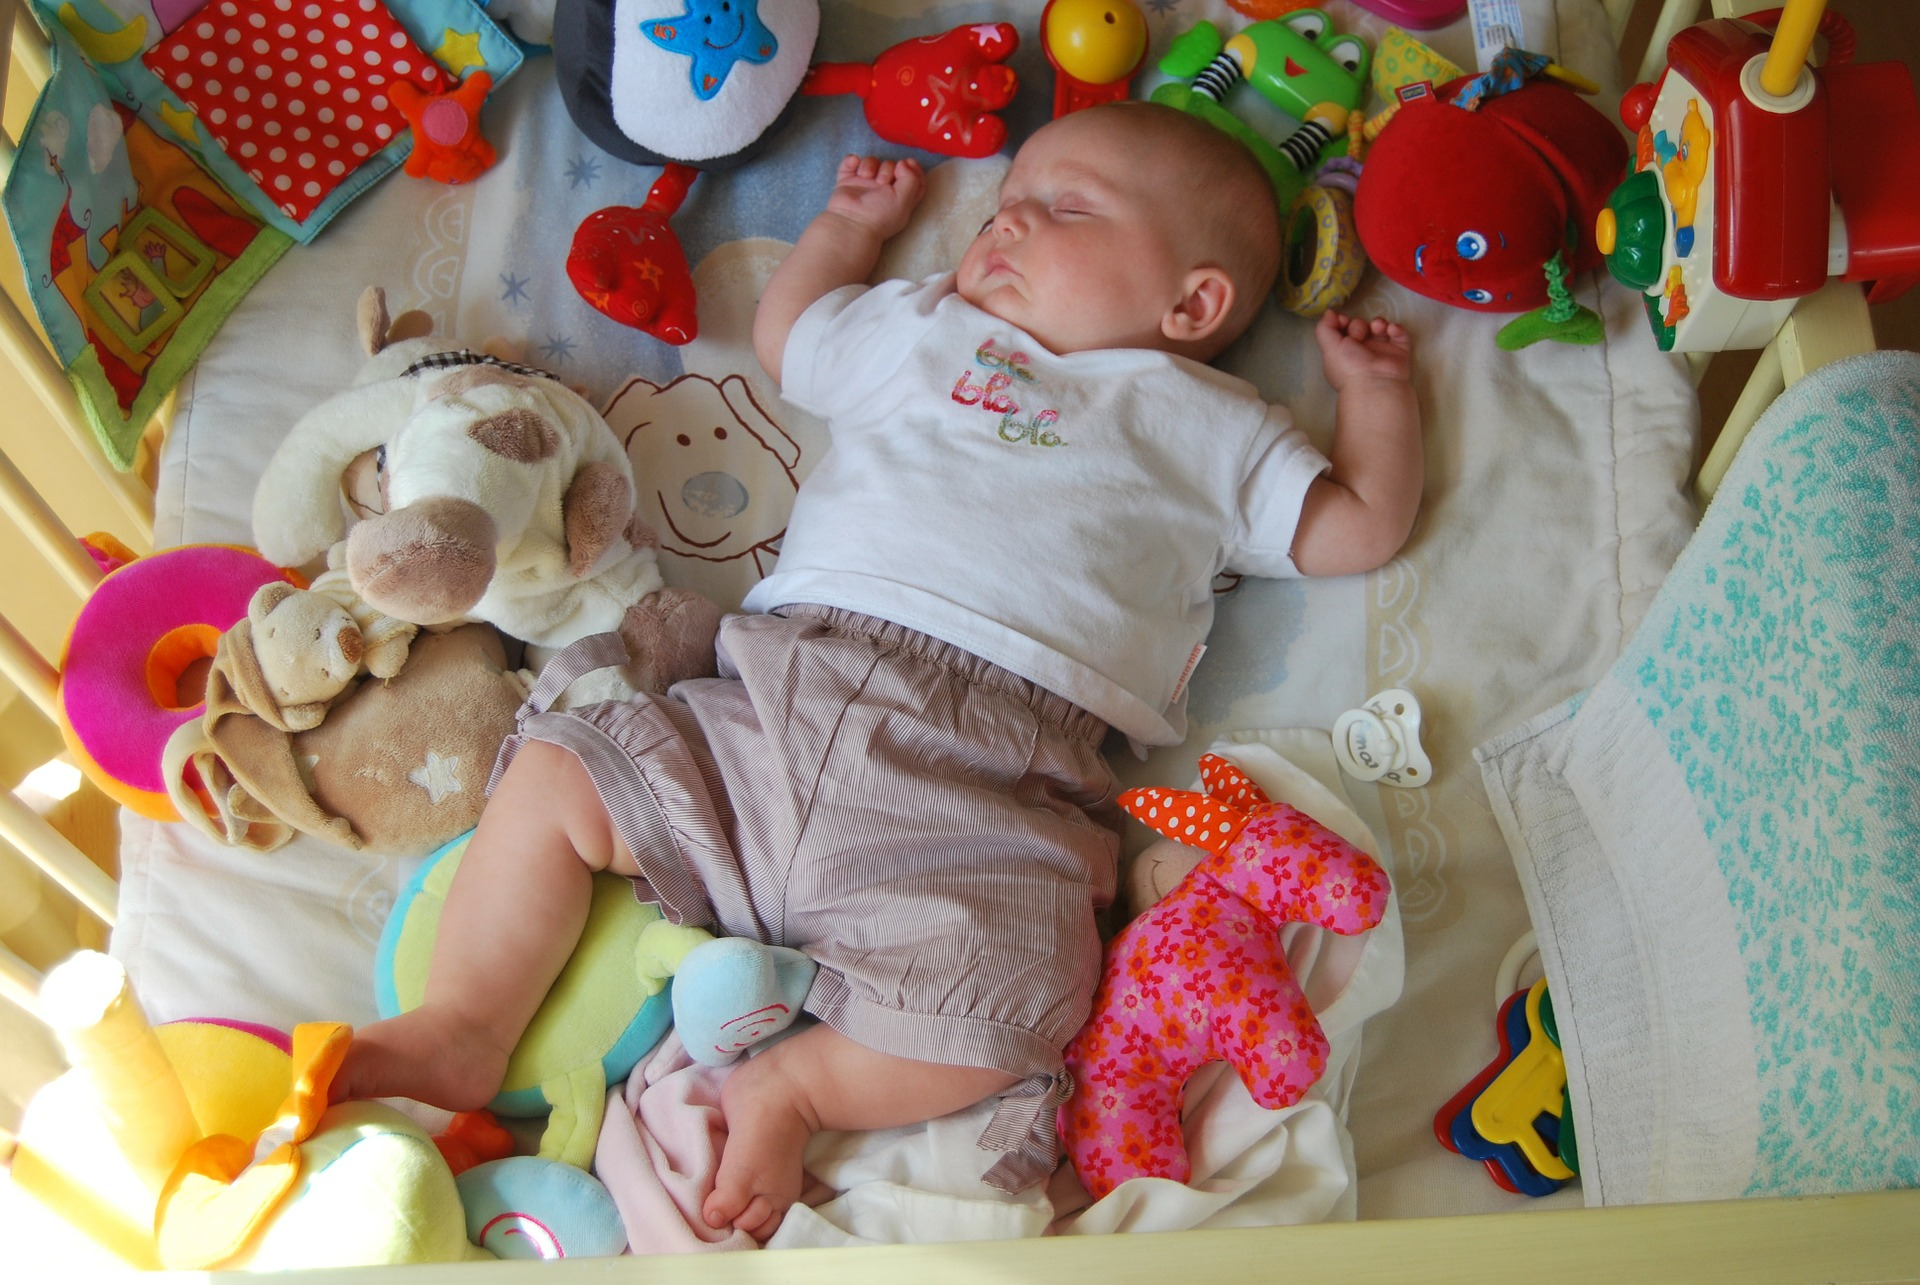 Top 10 Baby Toys : Top baby toys gifts for month olds mumsnotes